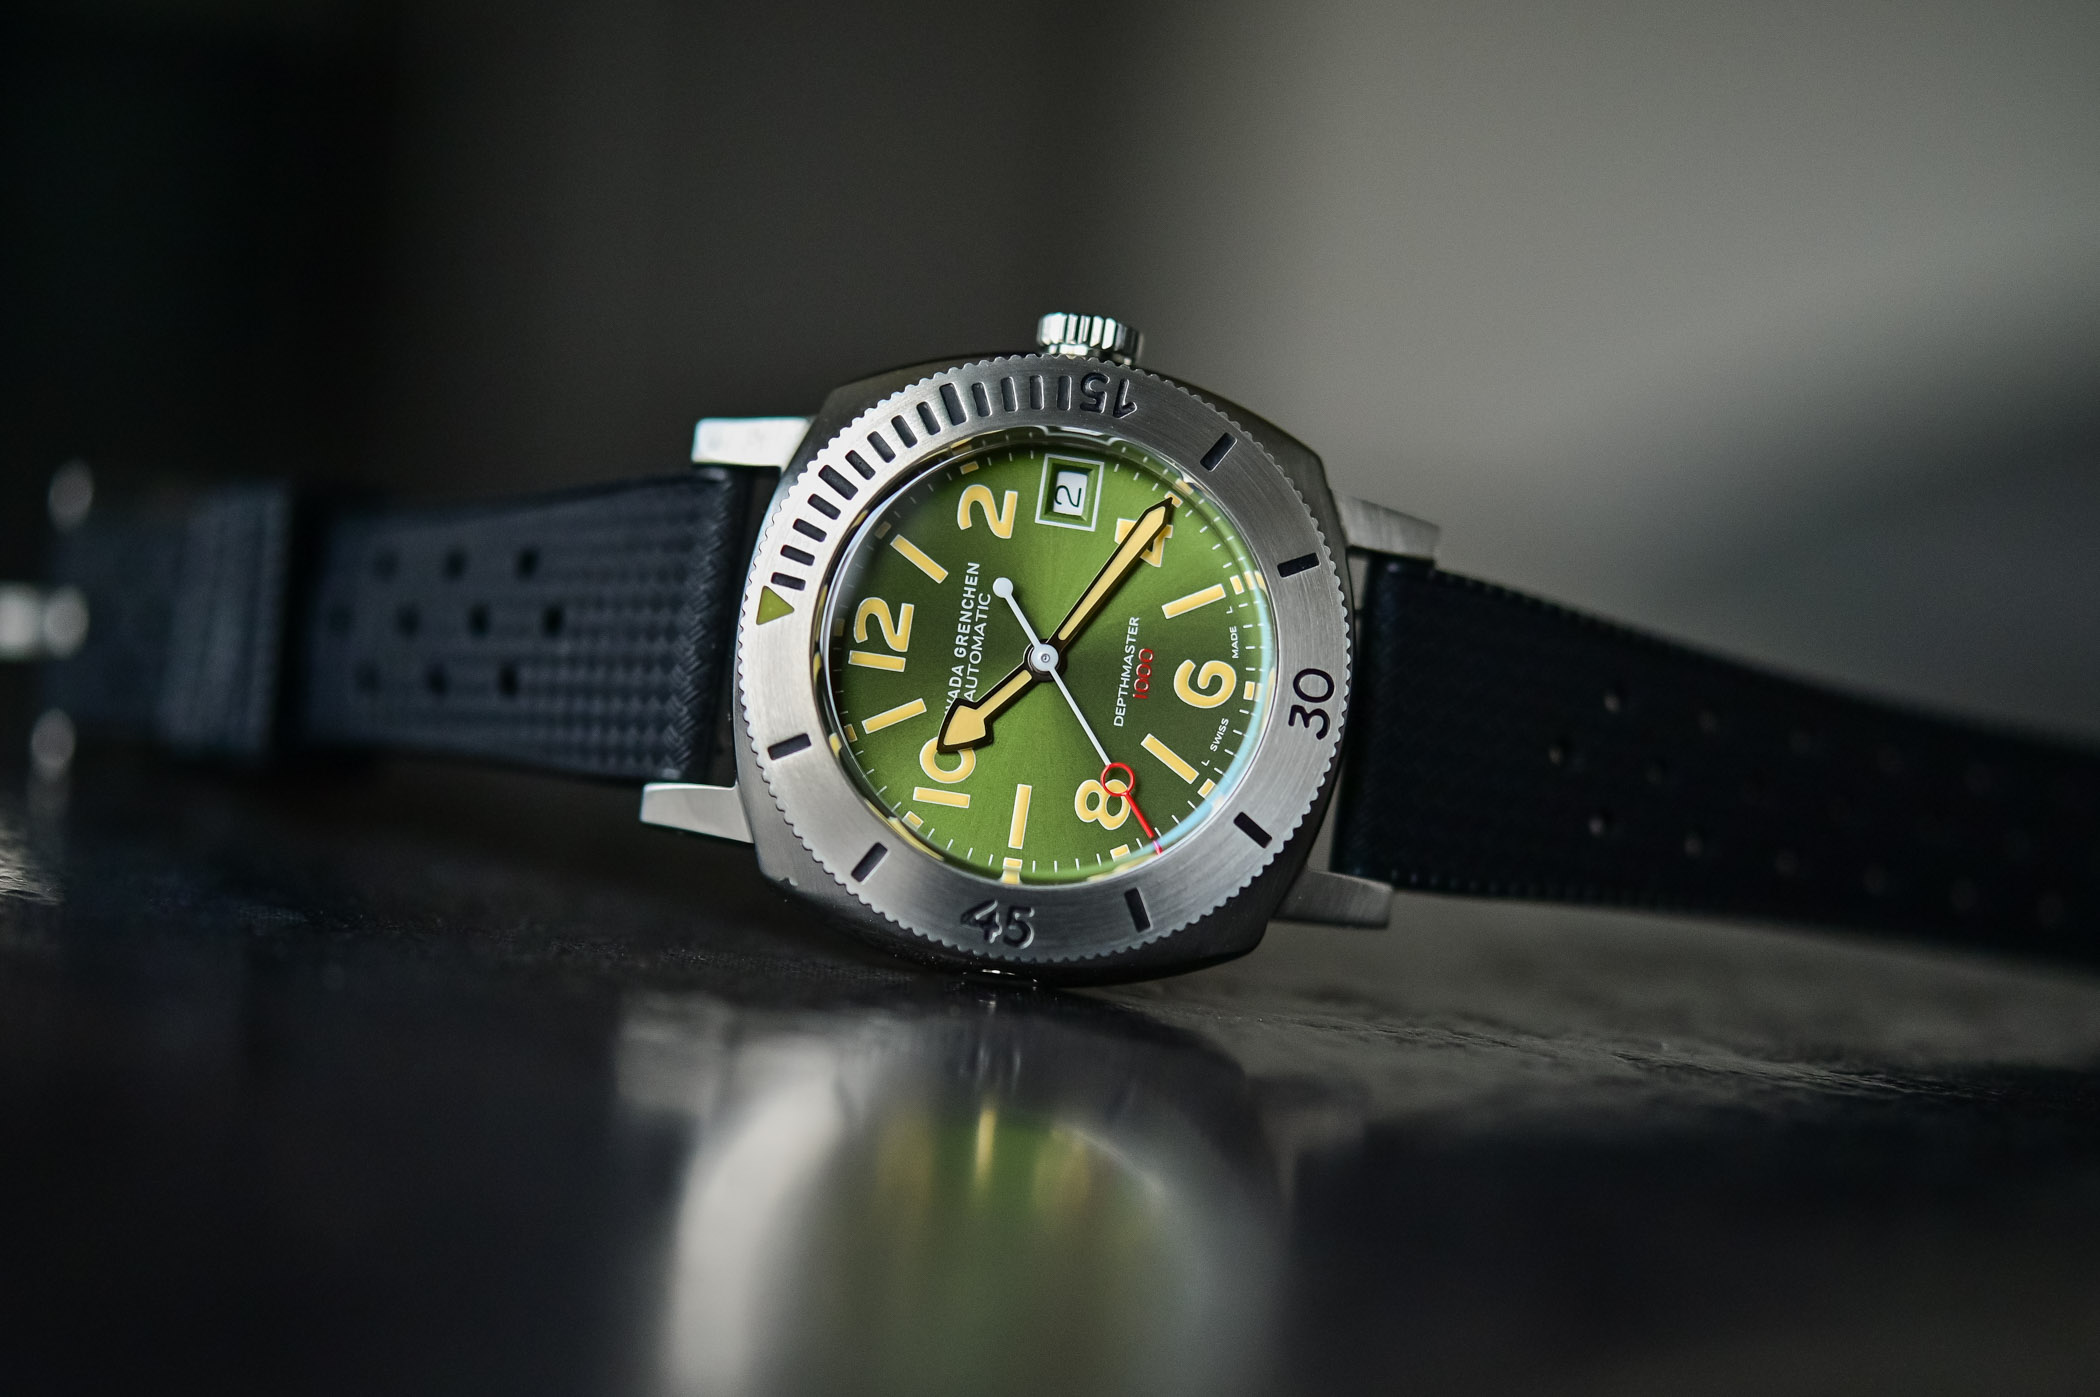 Nivada Grenchen Depthmaster Green Numerals Date 14103A09 - value proposition dive watch